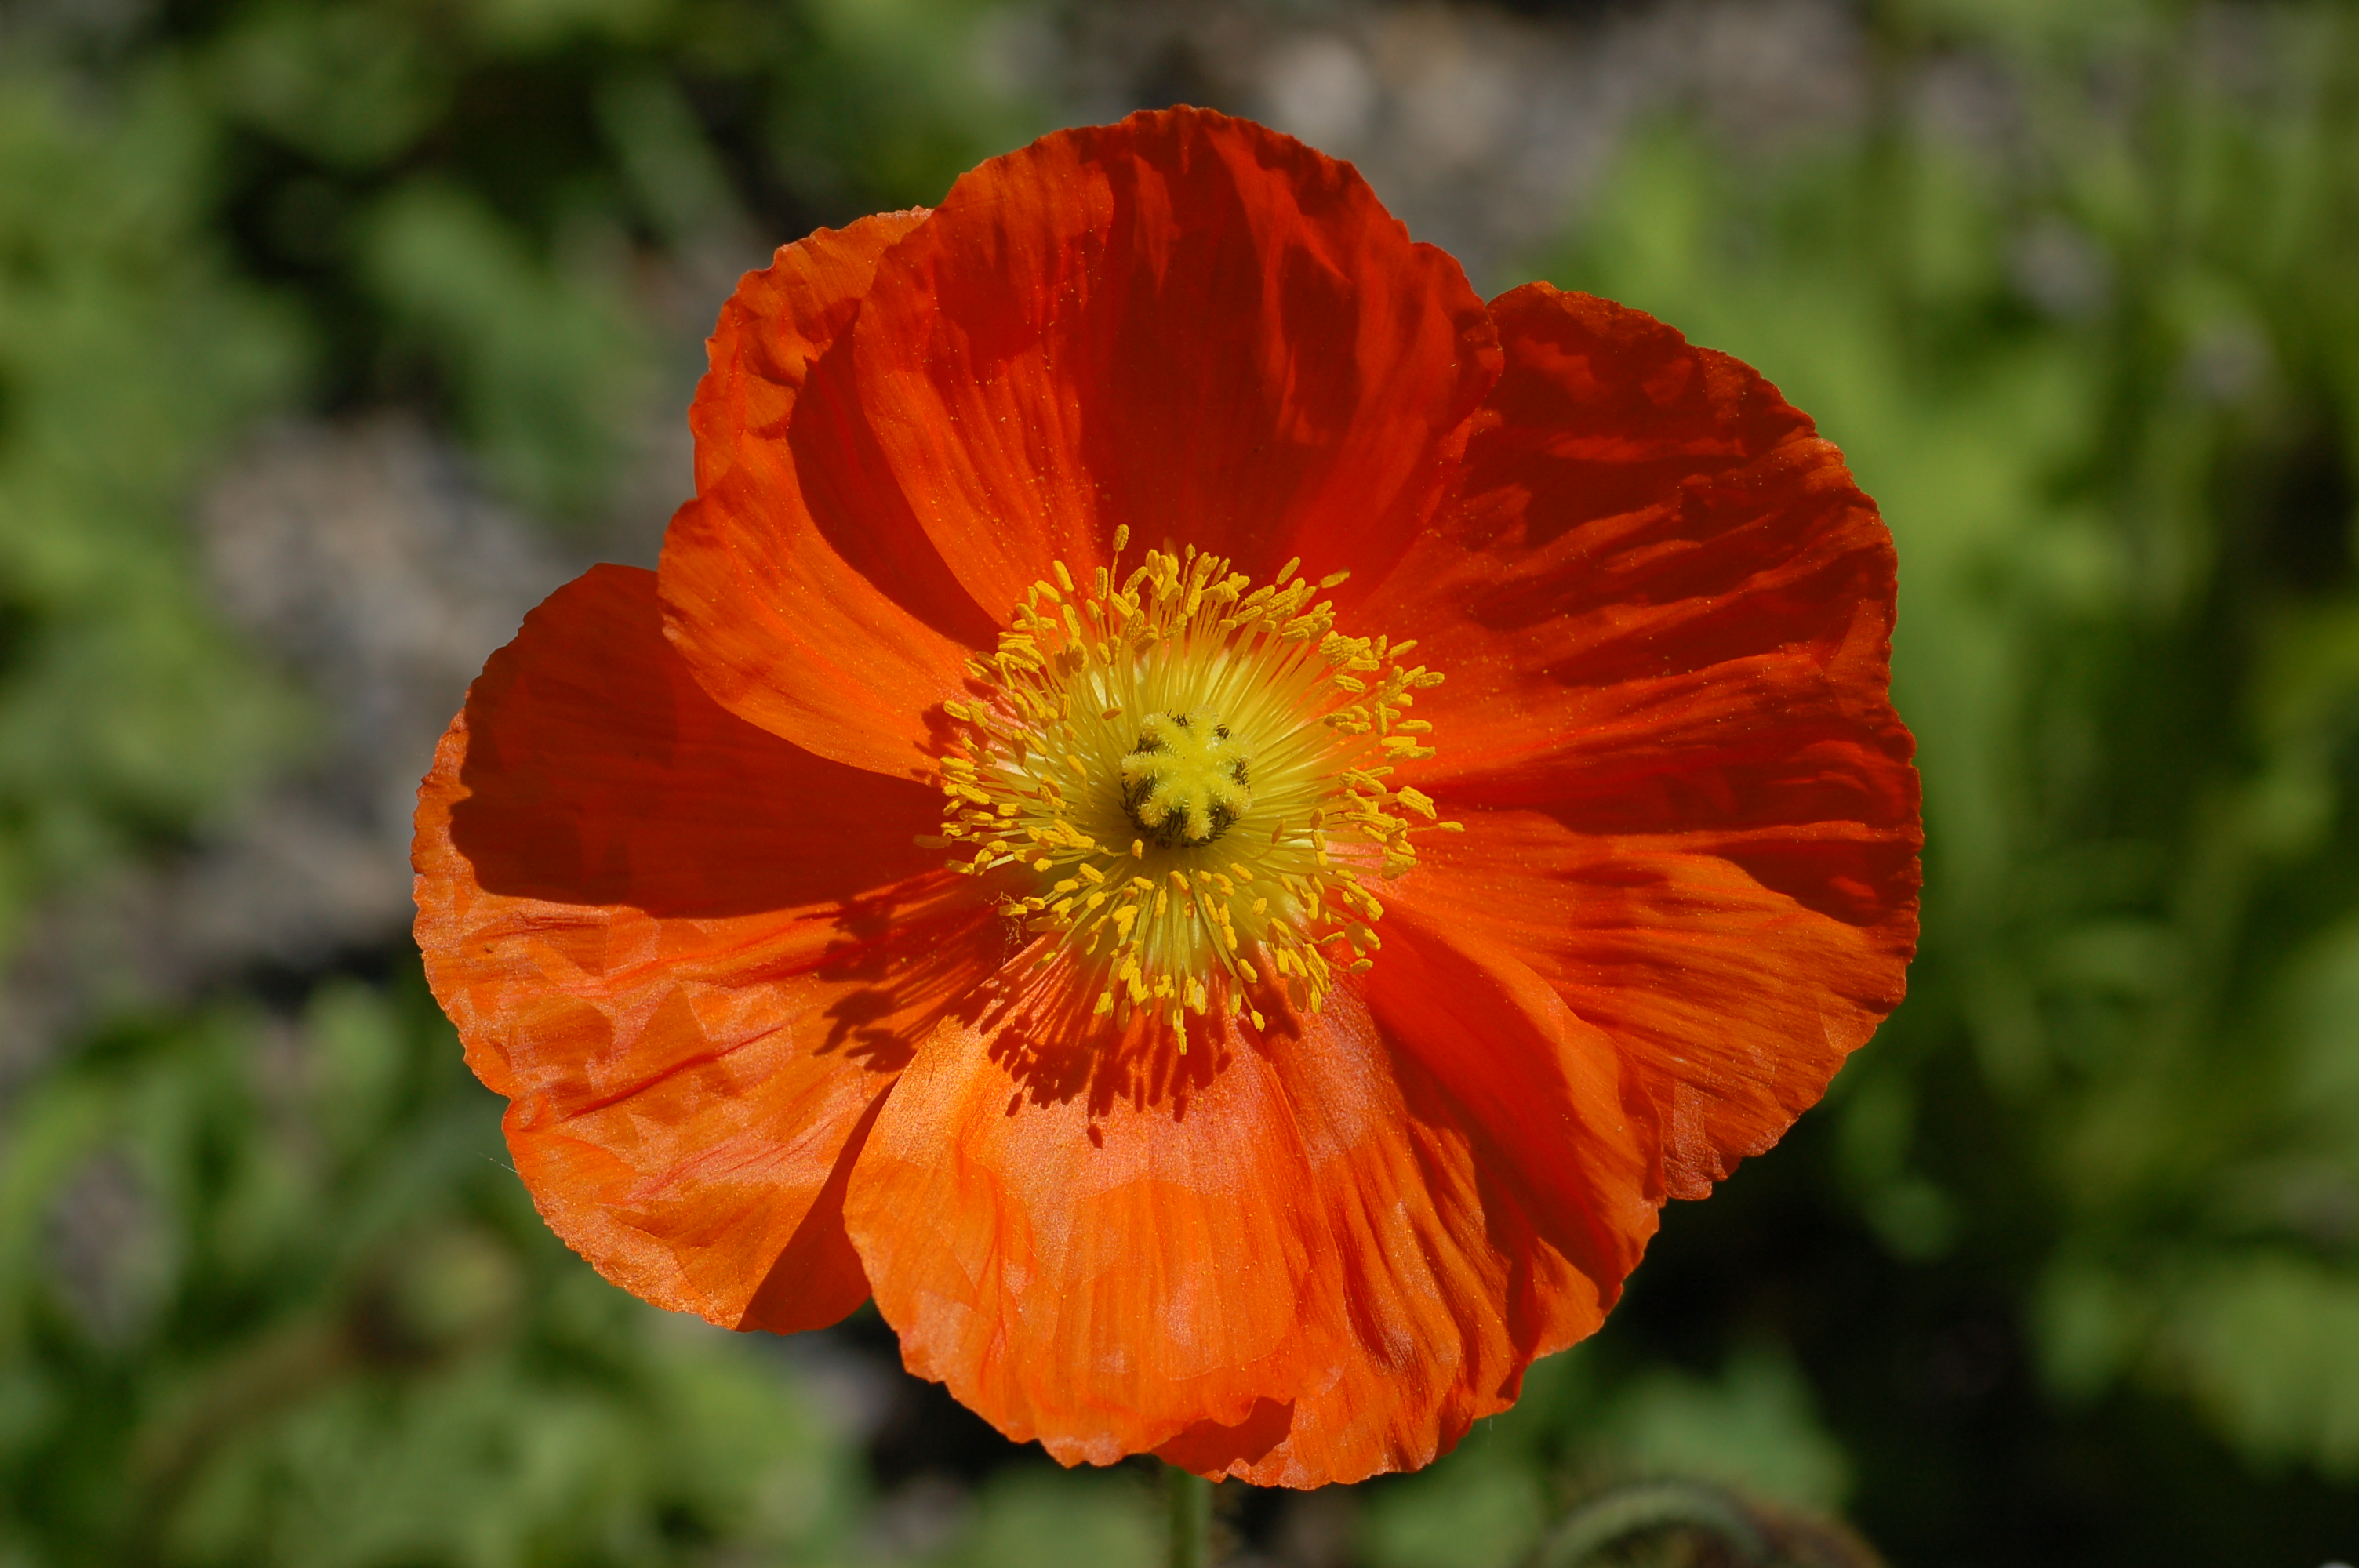 Iceland_Poppy_Papaver_nudicaule_'Champagne_Bubbles'_Orange_Flower